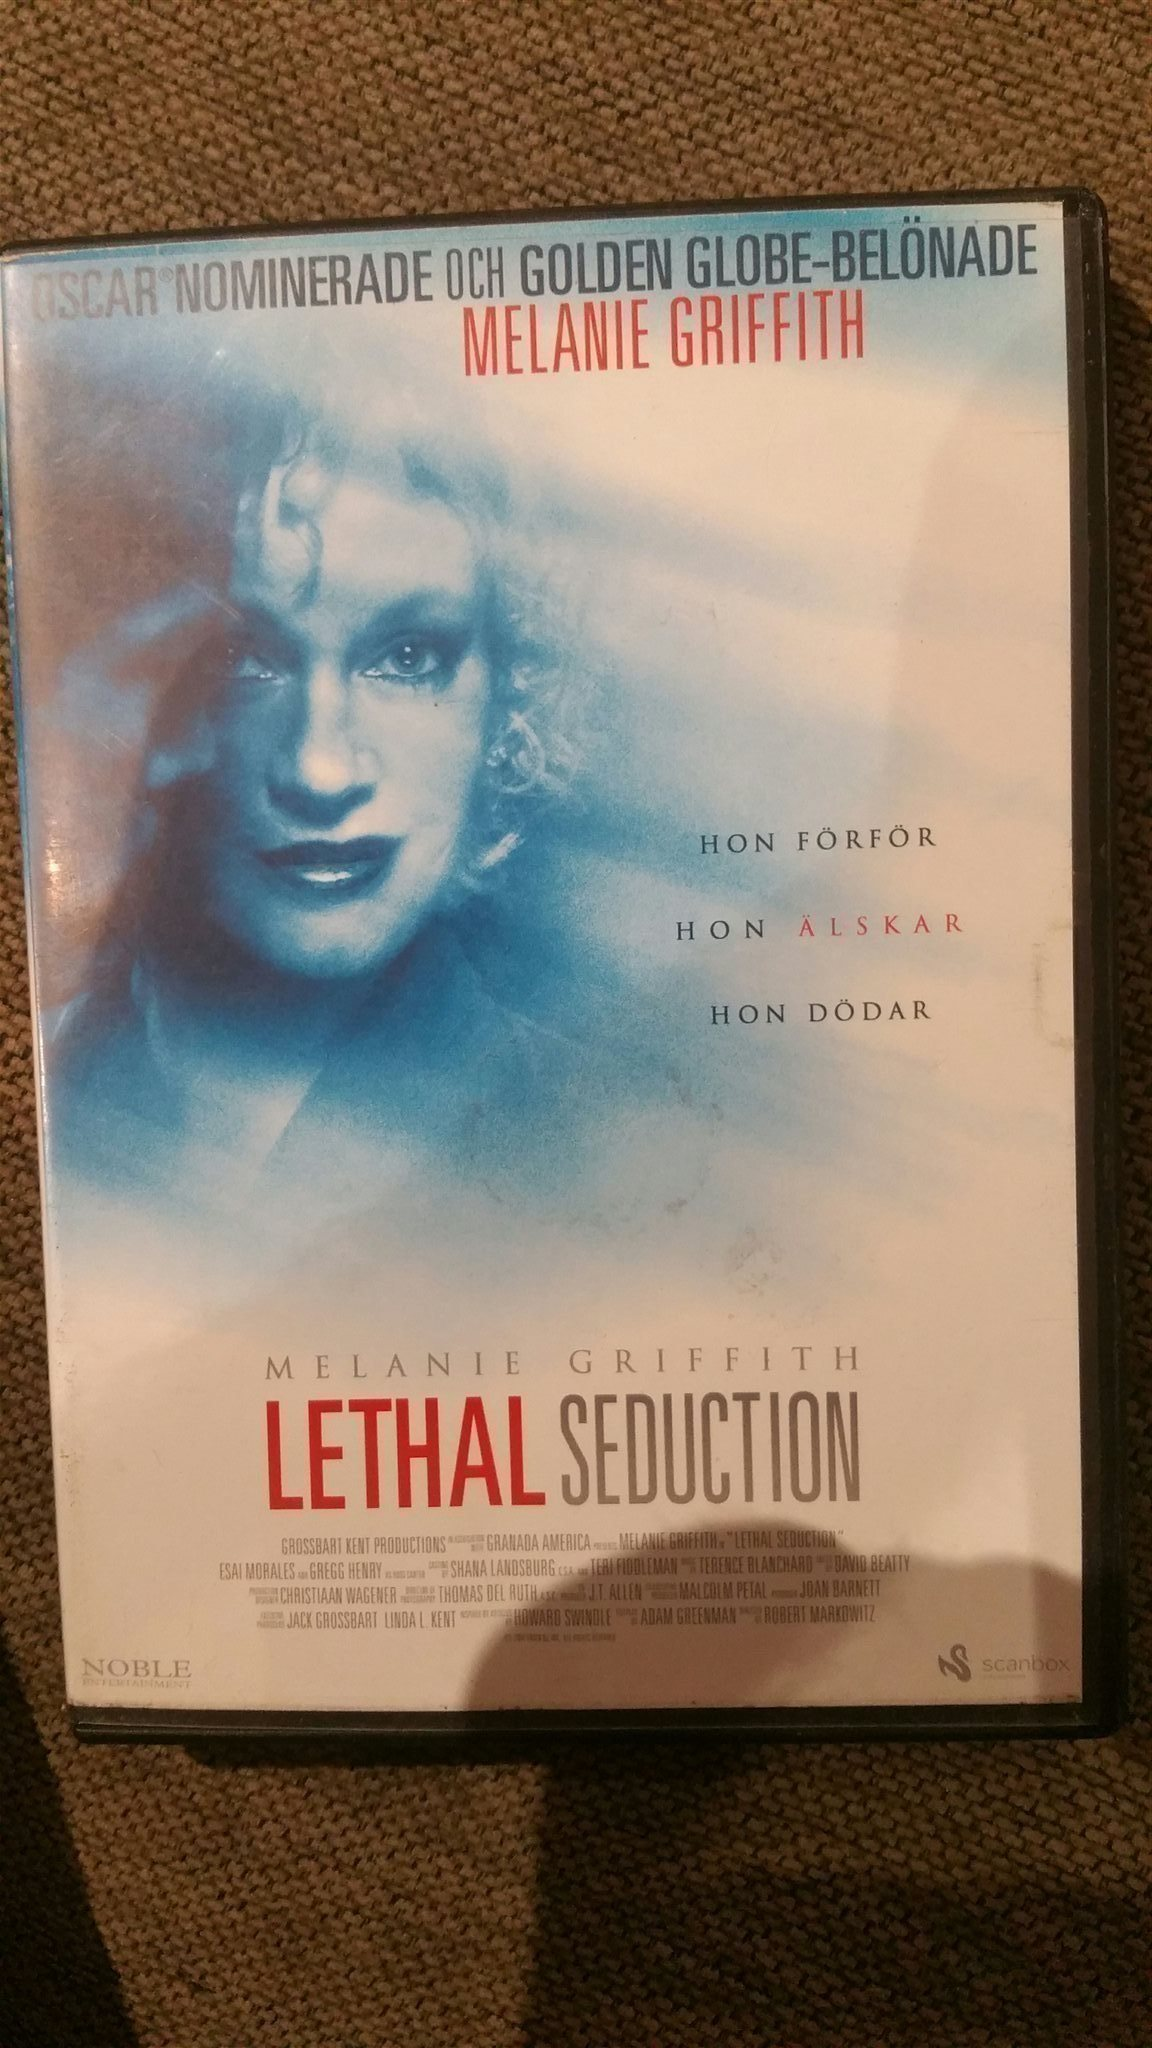 Lethal seduction- EJ SAMFRAKT!